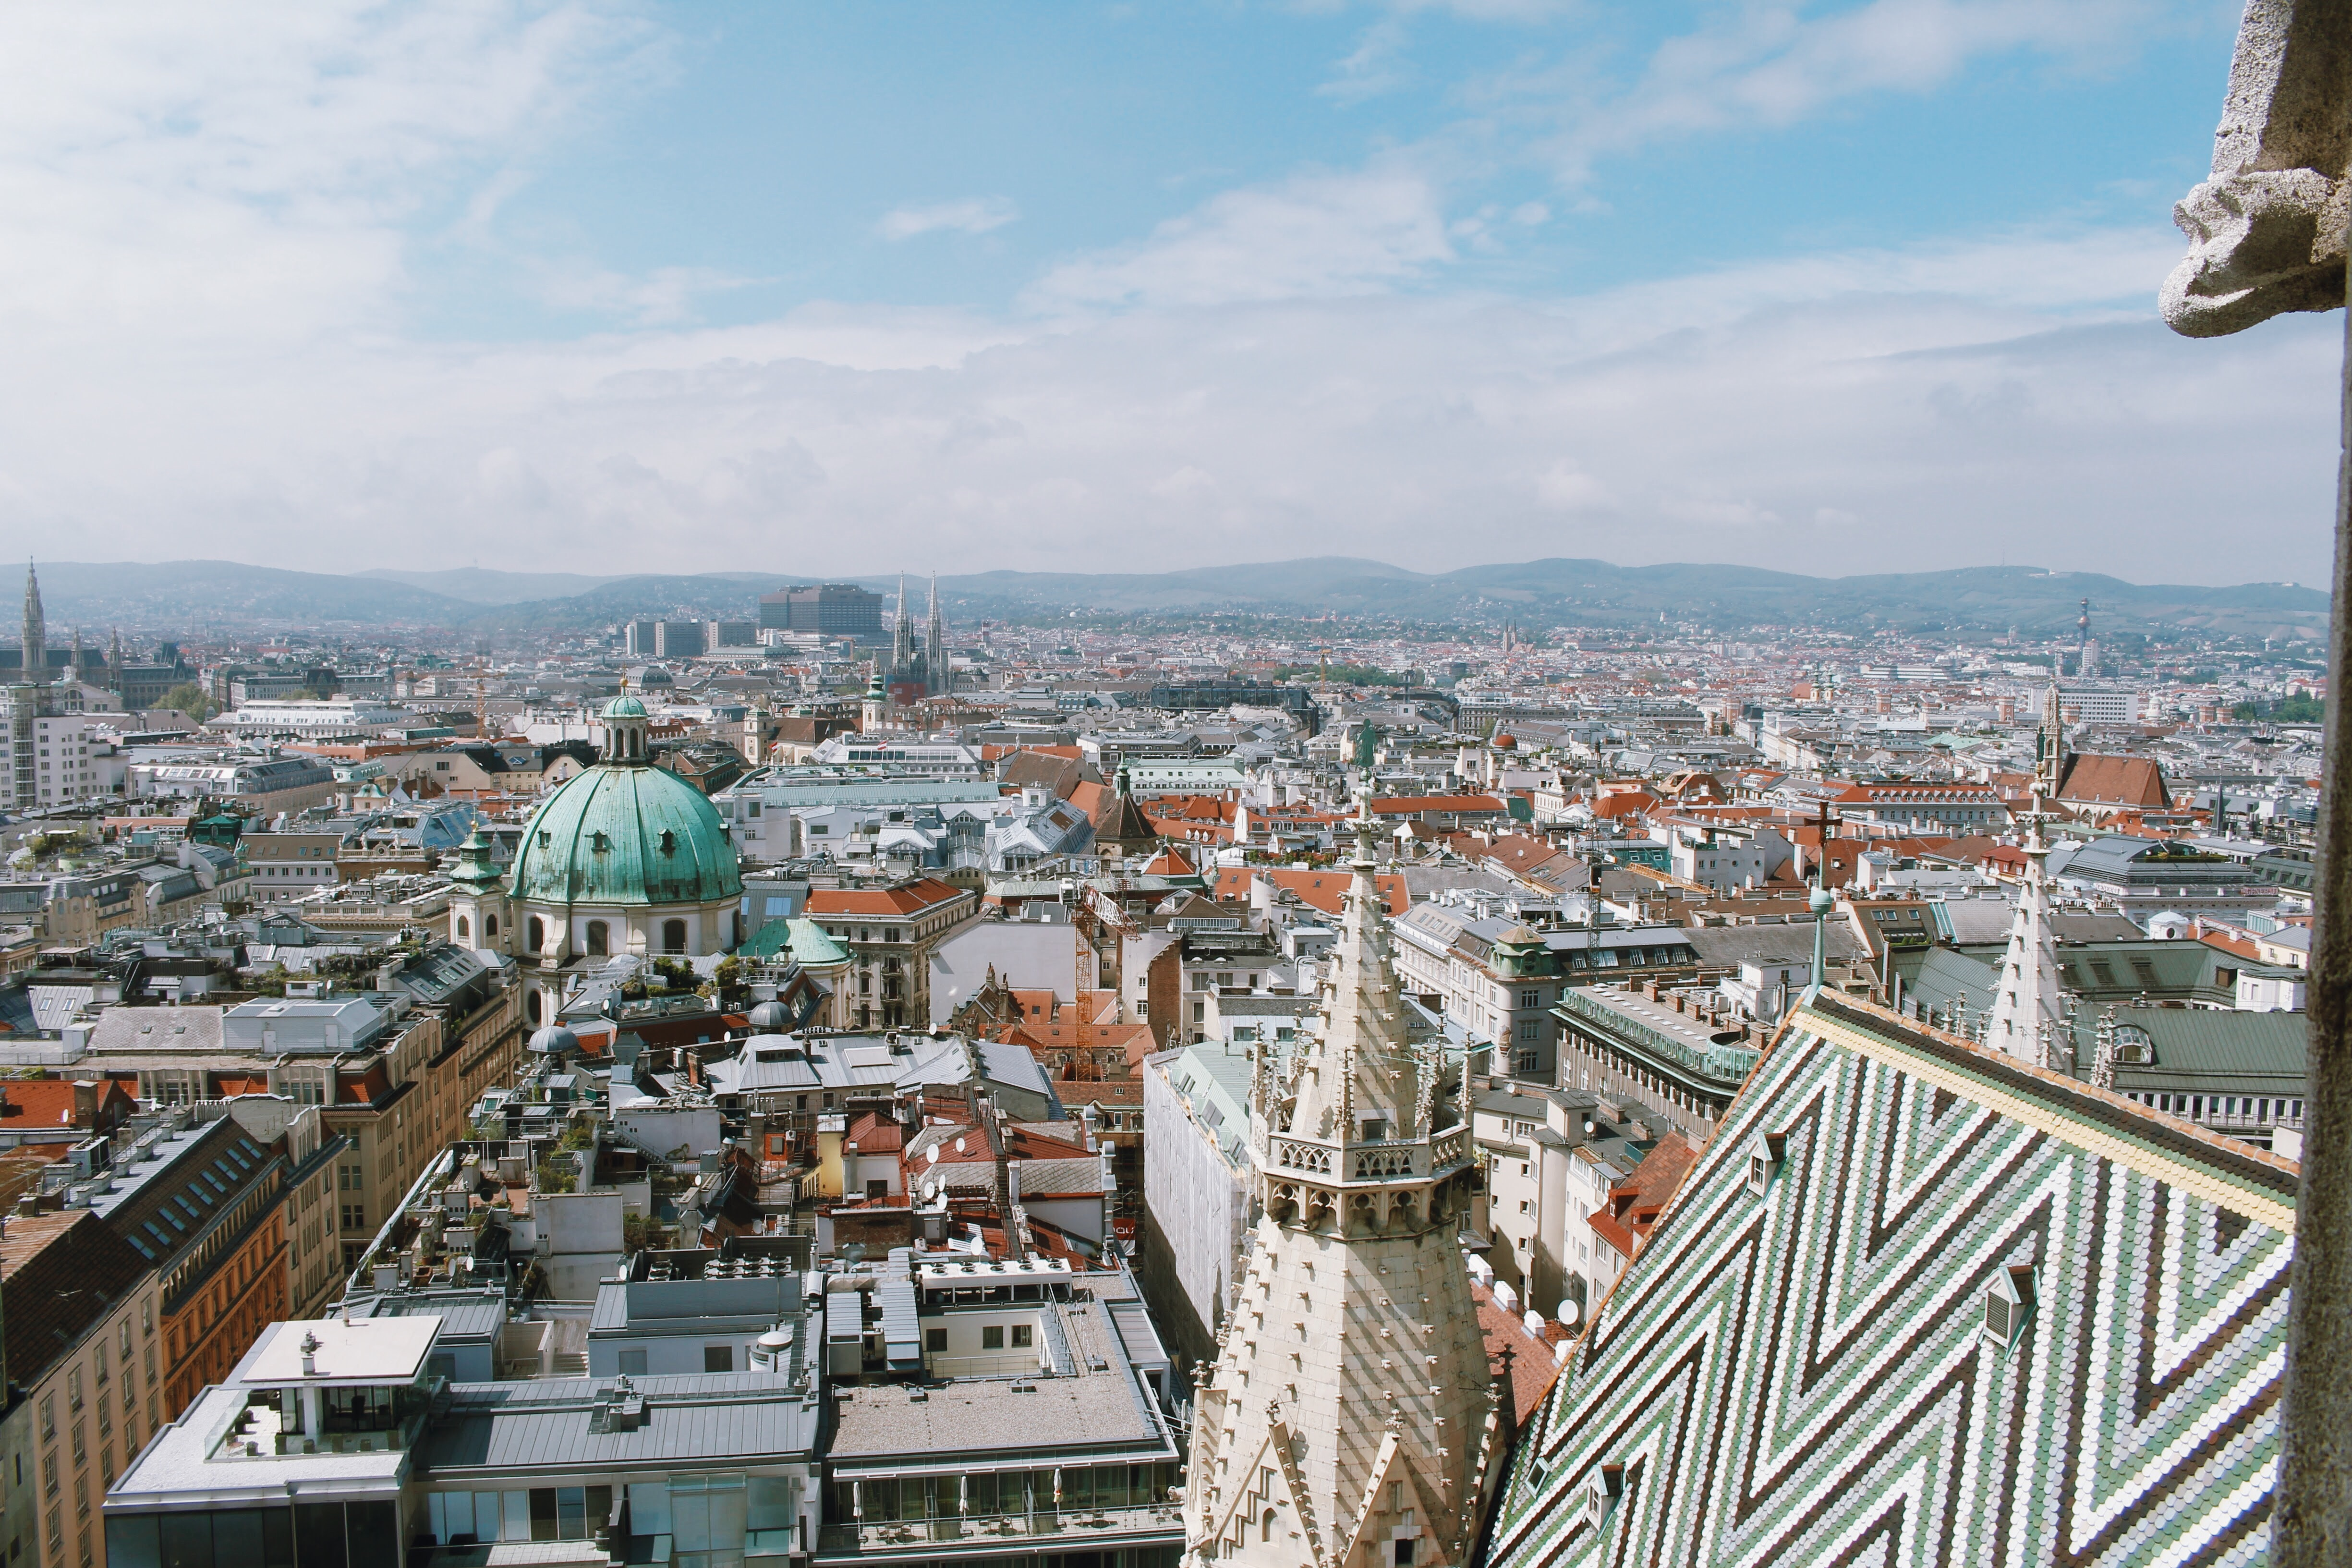 3 Day Vienna, Austria Travel Itinerary